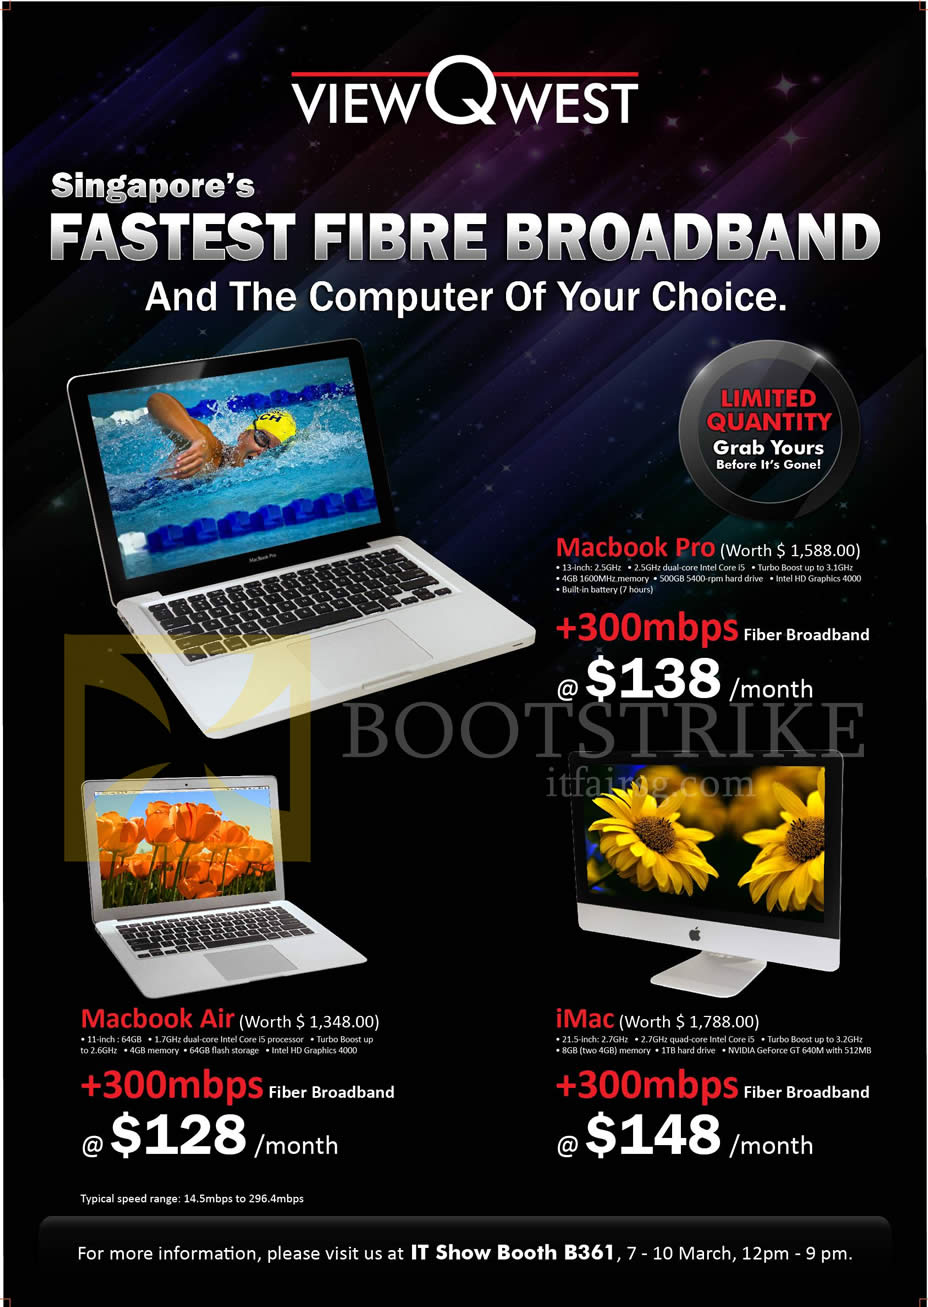 IT SHOW 2013 price list image brochure of Viewqwest Fibre Broadband 300Mbps Free Apple Macbook Pro, Macbook Air, IMac